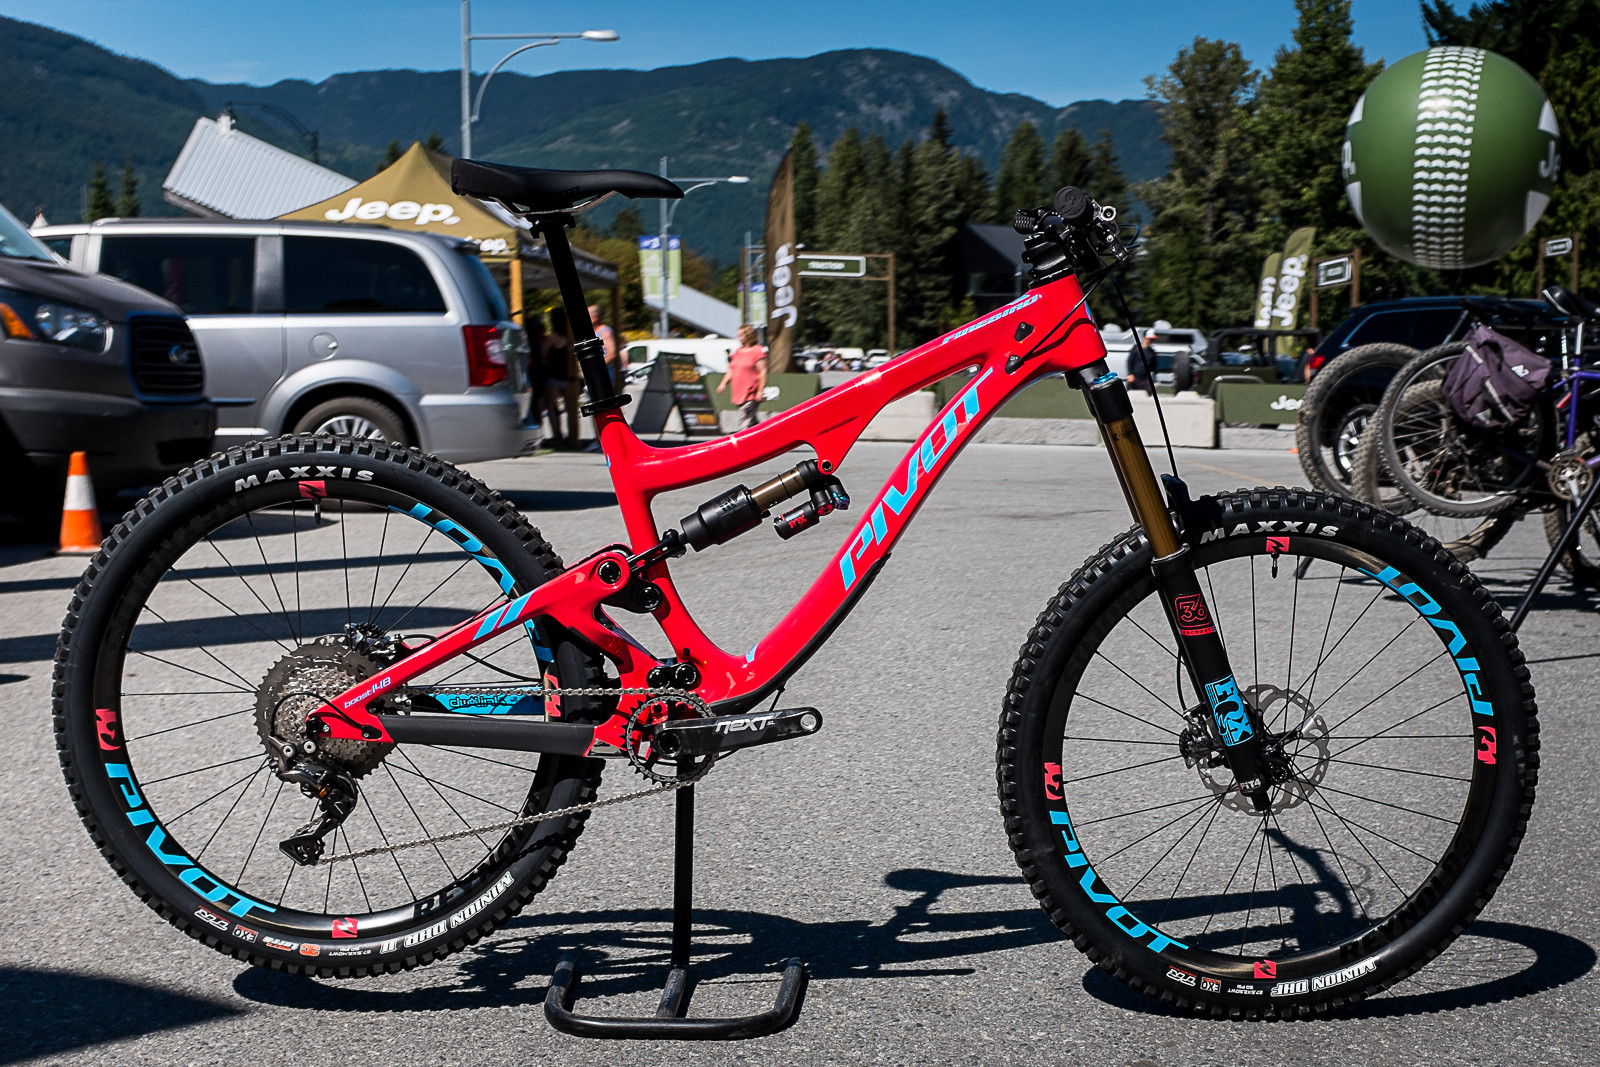 All-New 2017 Pivot Cycles Firebird - PIT BITS - New 2017 Products from Crankworx Whistler - Mountain Biking Pictures - Vital MTB